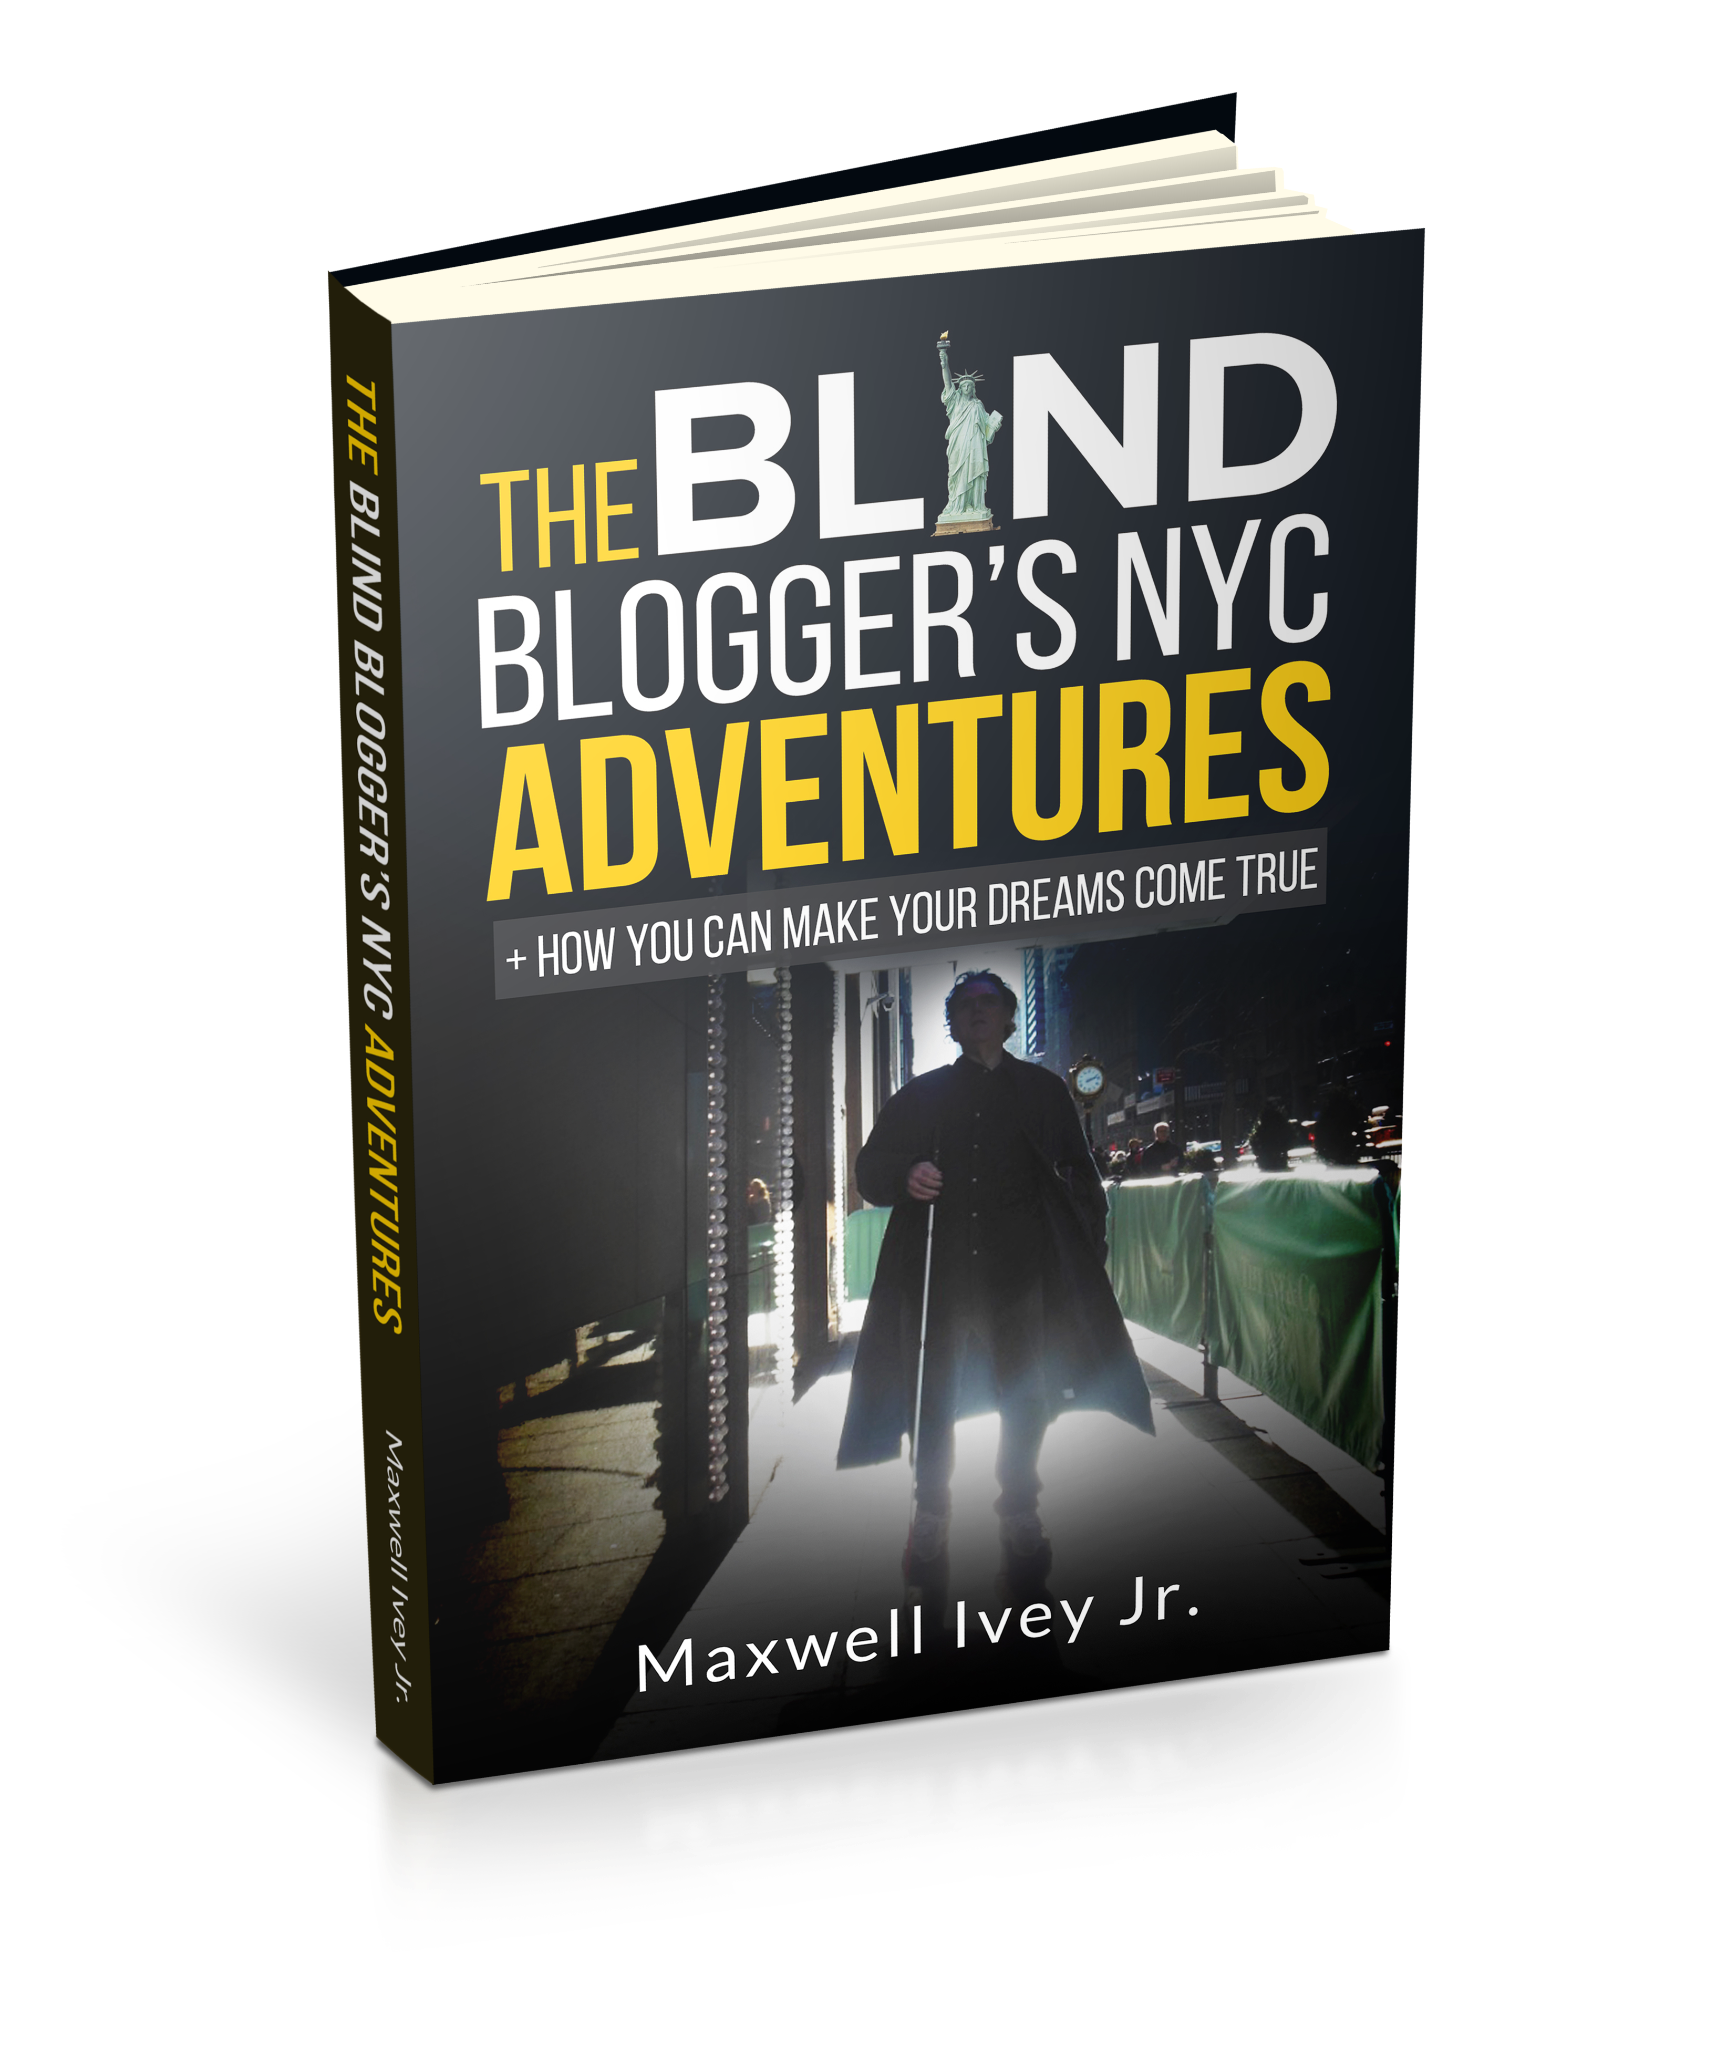 Signed copy of The Blind Blogger's NYC Adventures